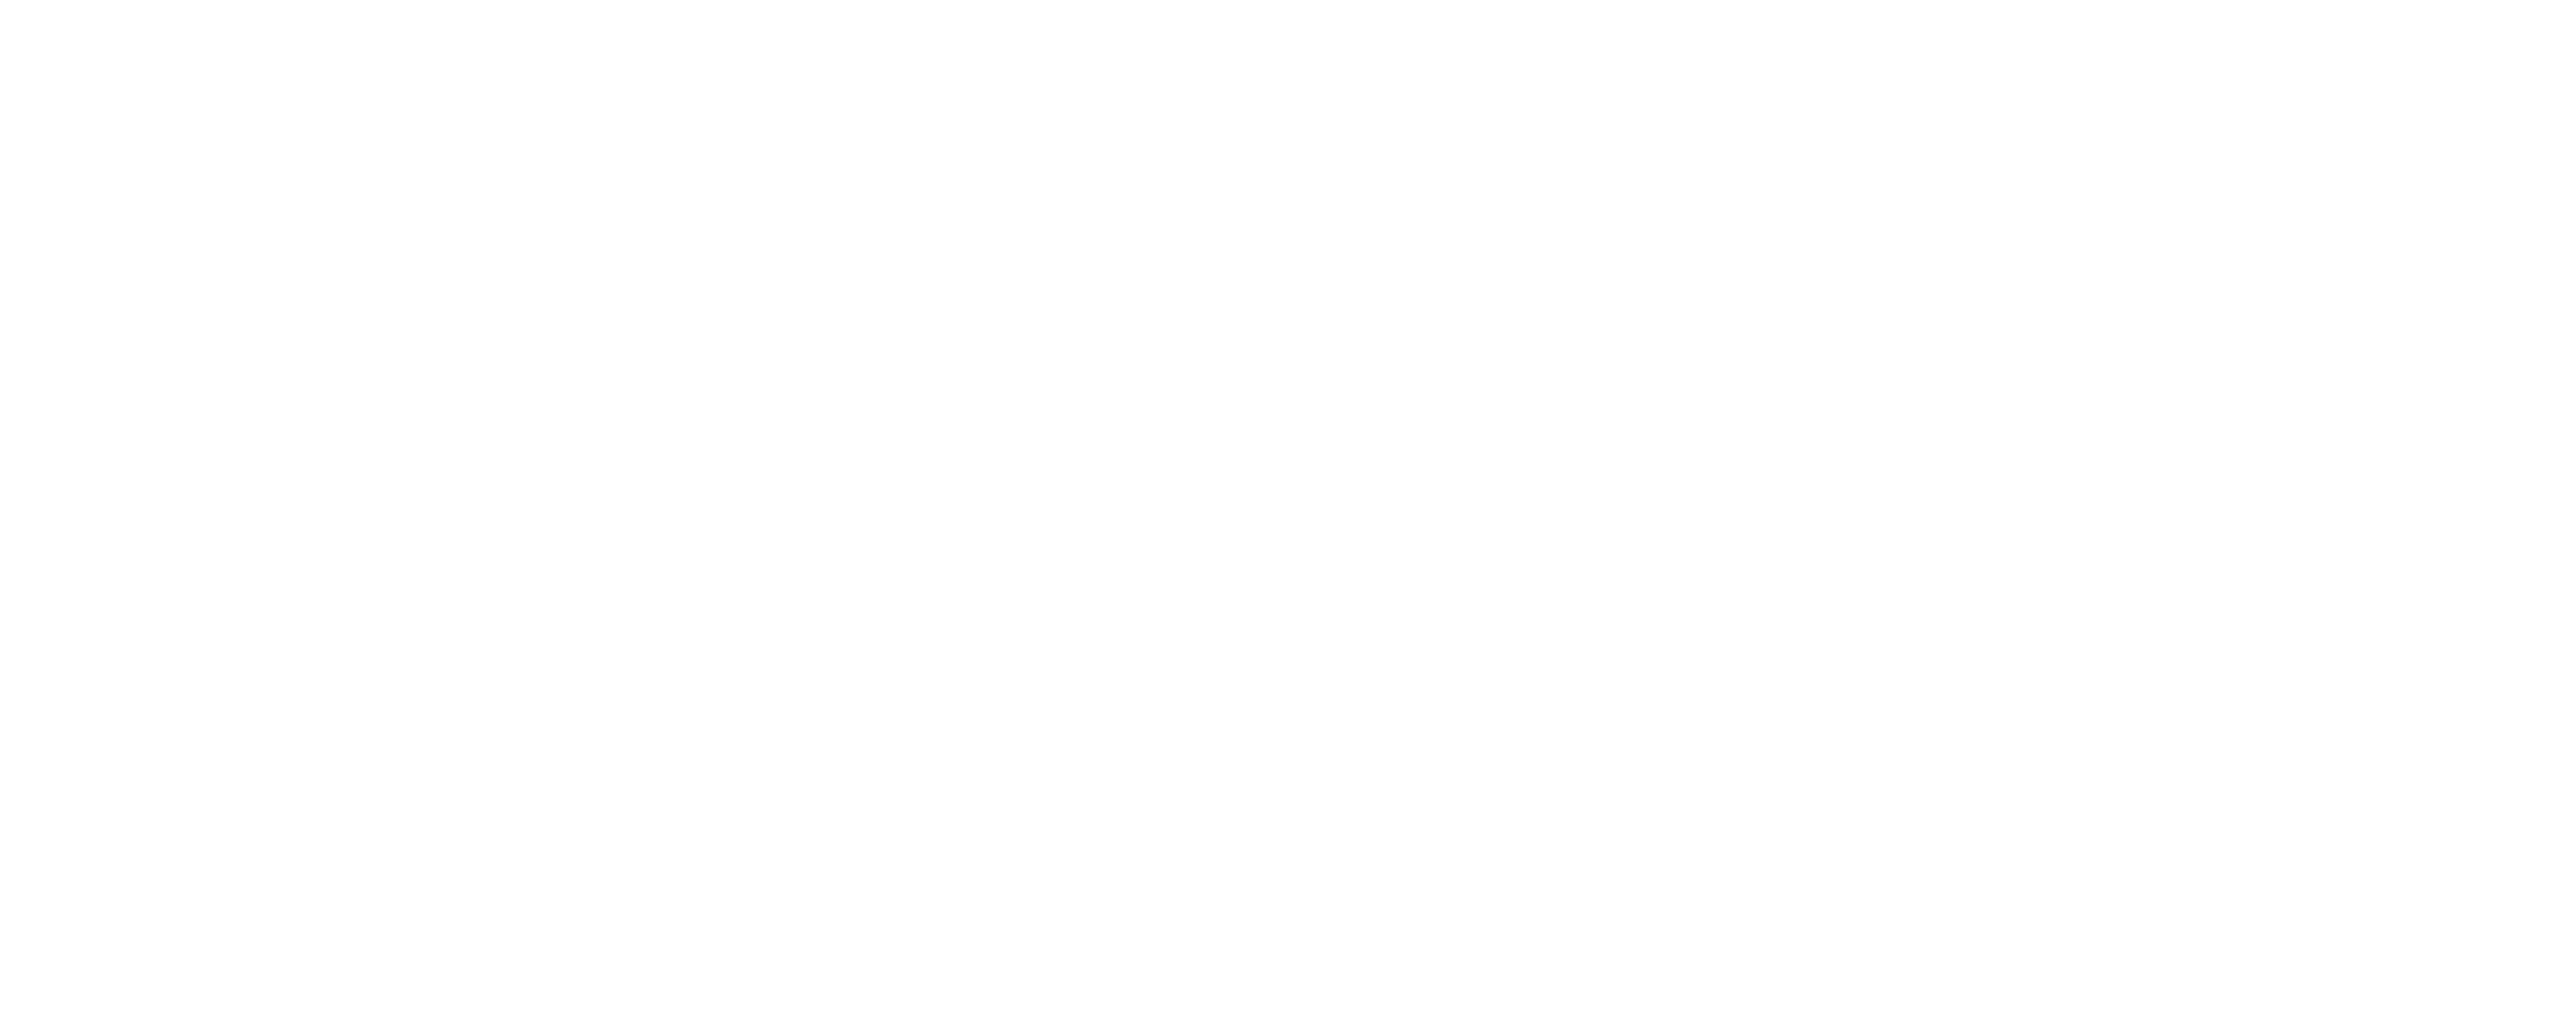 Tech Showcase